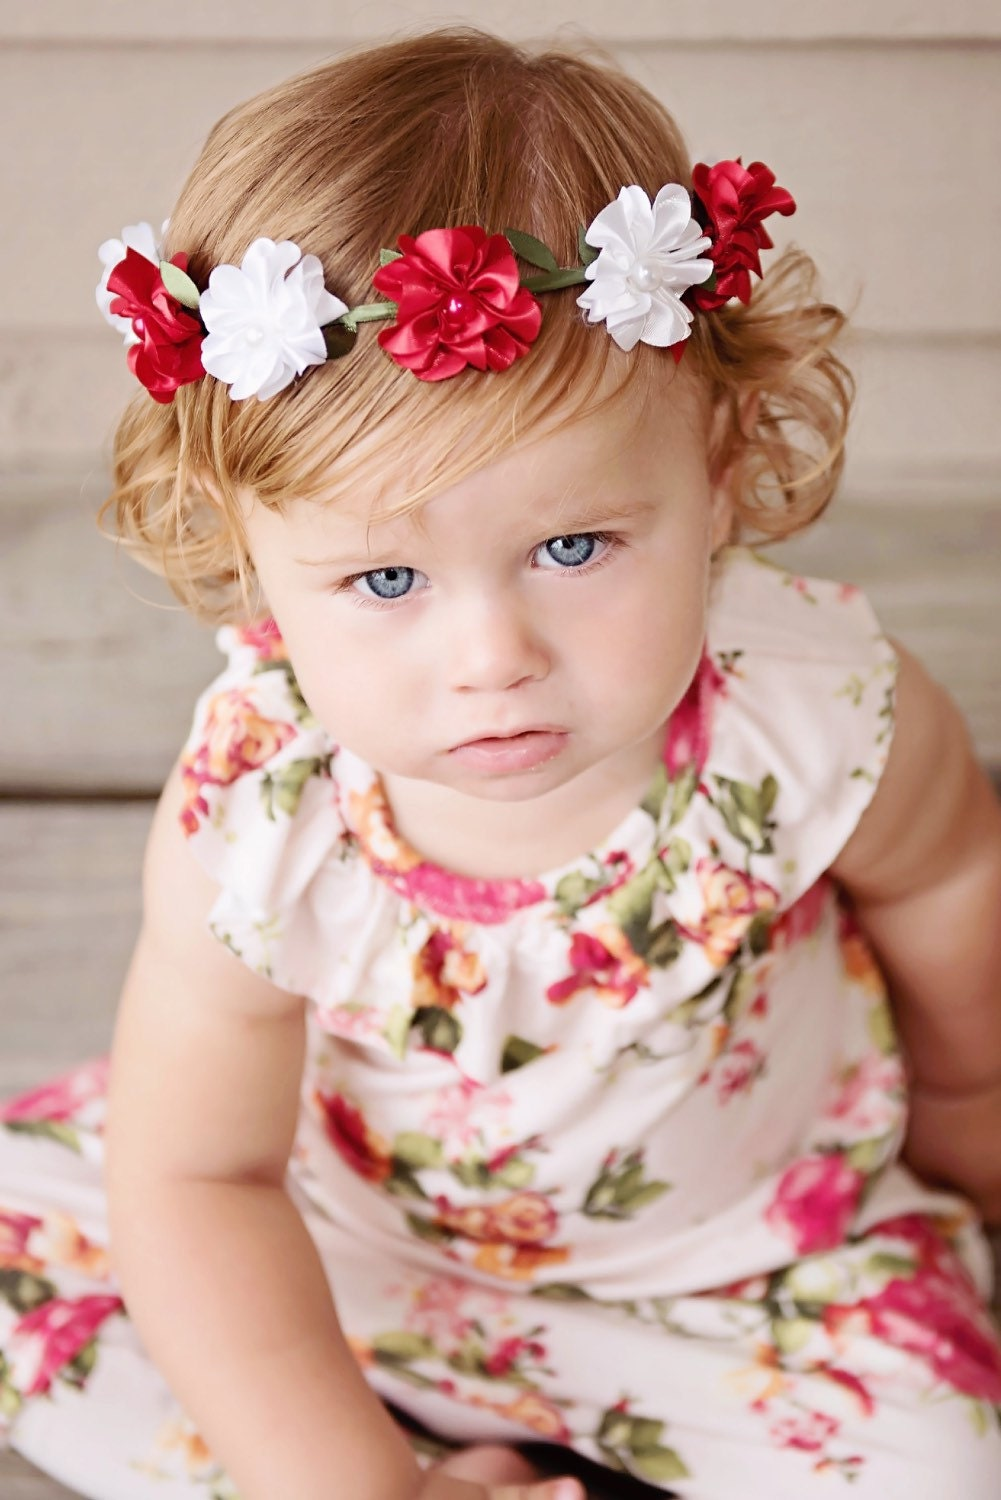 Baby flower crown toddler flower crown red and white flower crown baby flower crown toddler flower crown red and white flower crown girls flower izmirmasajfo